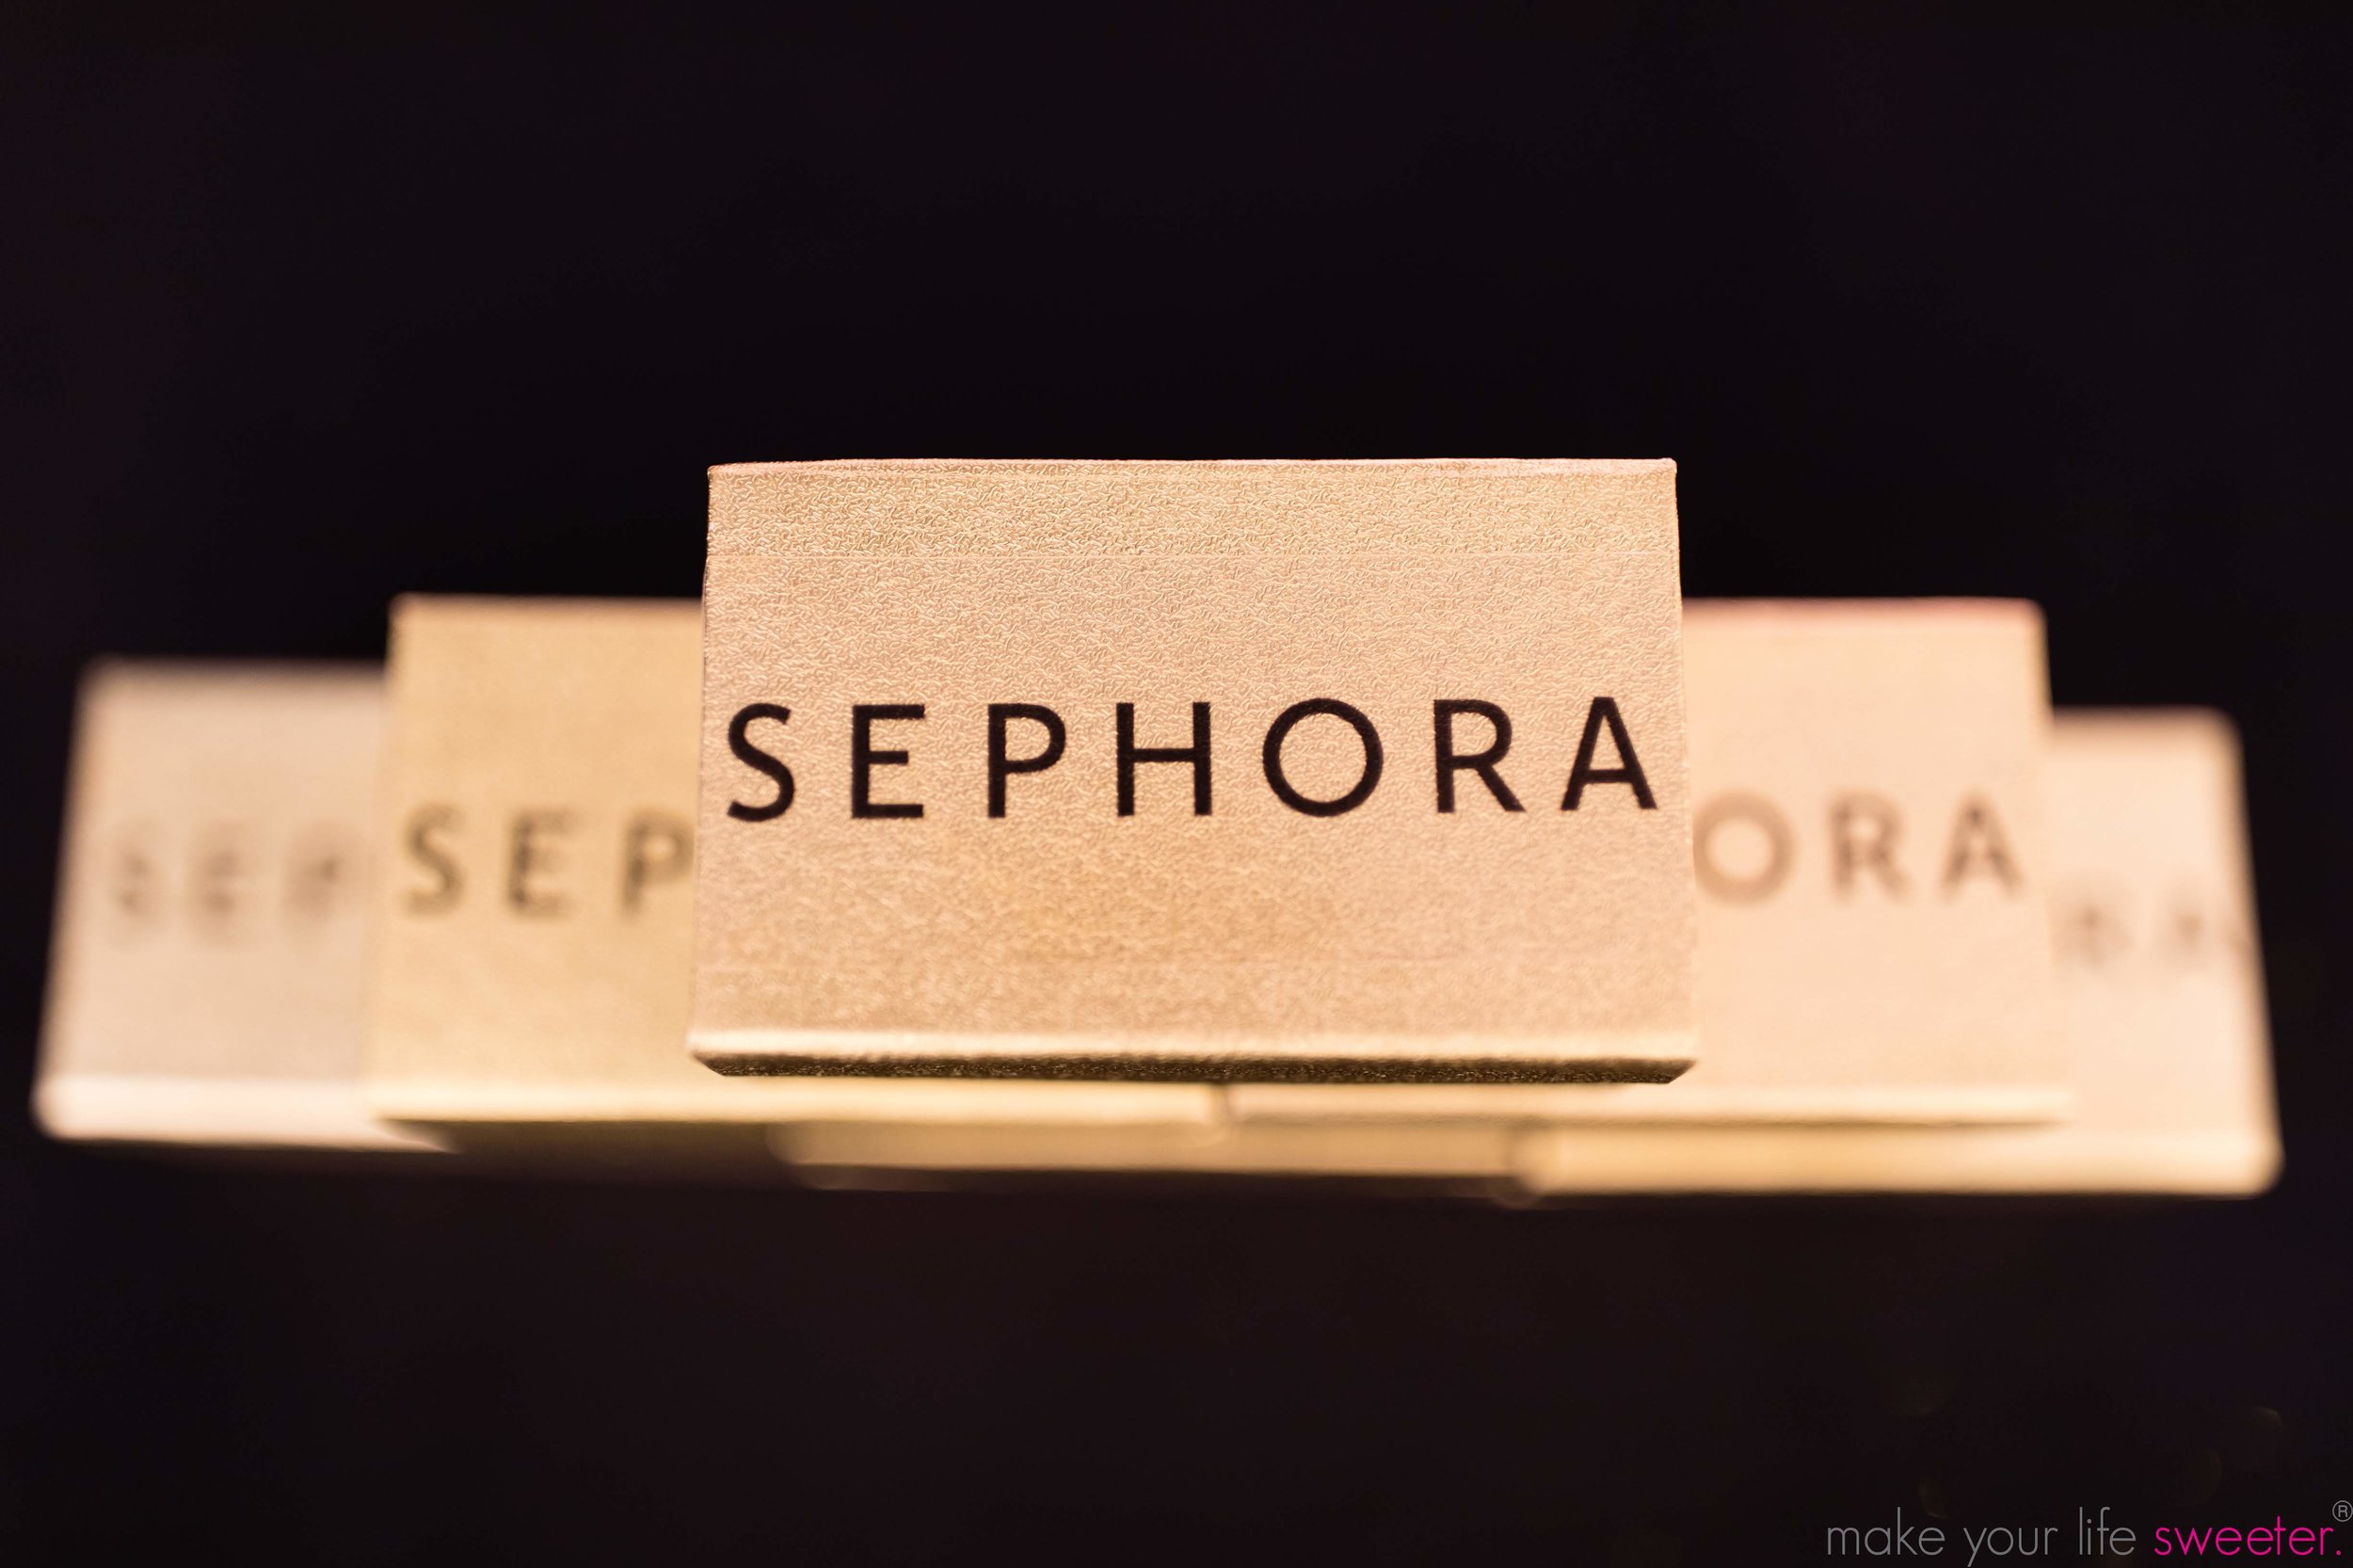 Make Your Life Sweeter Events: Sephora Hudson Yards - 2 Piece Customized Gold Chocolate Boxes